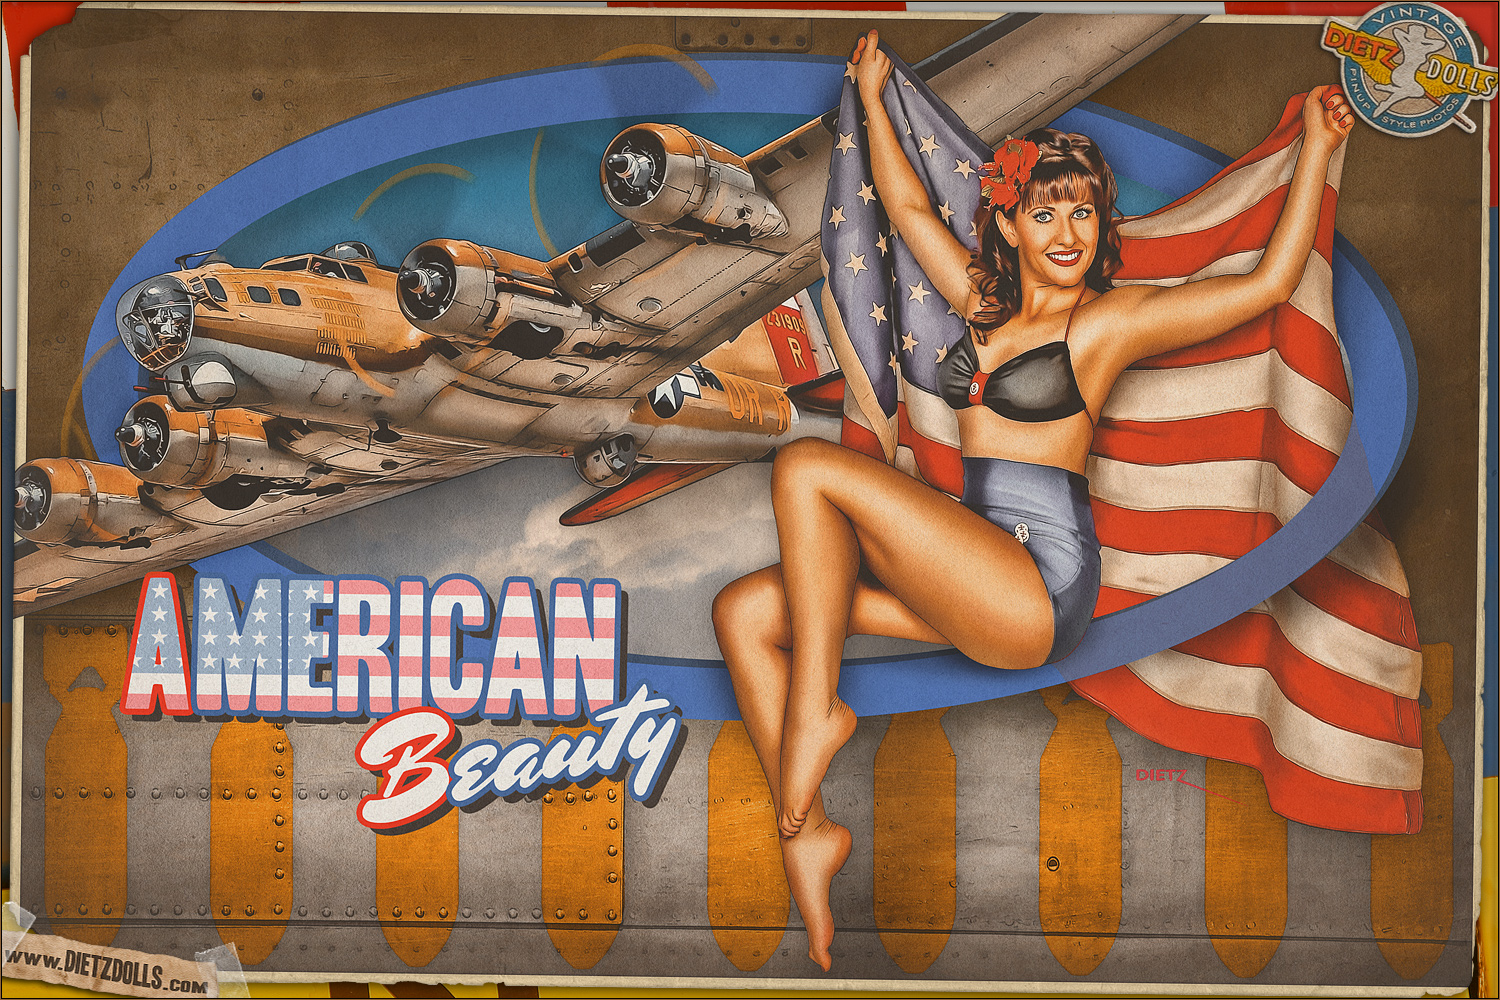 https://orig08.deviantart.net/7db1/f/2016/337/e/3/nose_art_pinup___american_beauty_by_warbirdphotographer-daqfoym.jpg